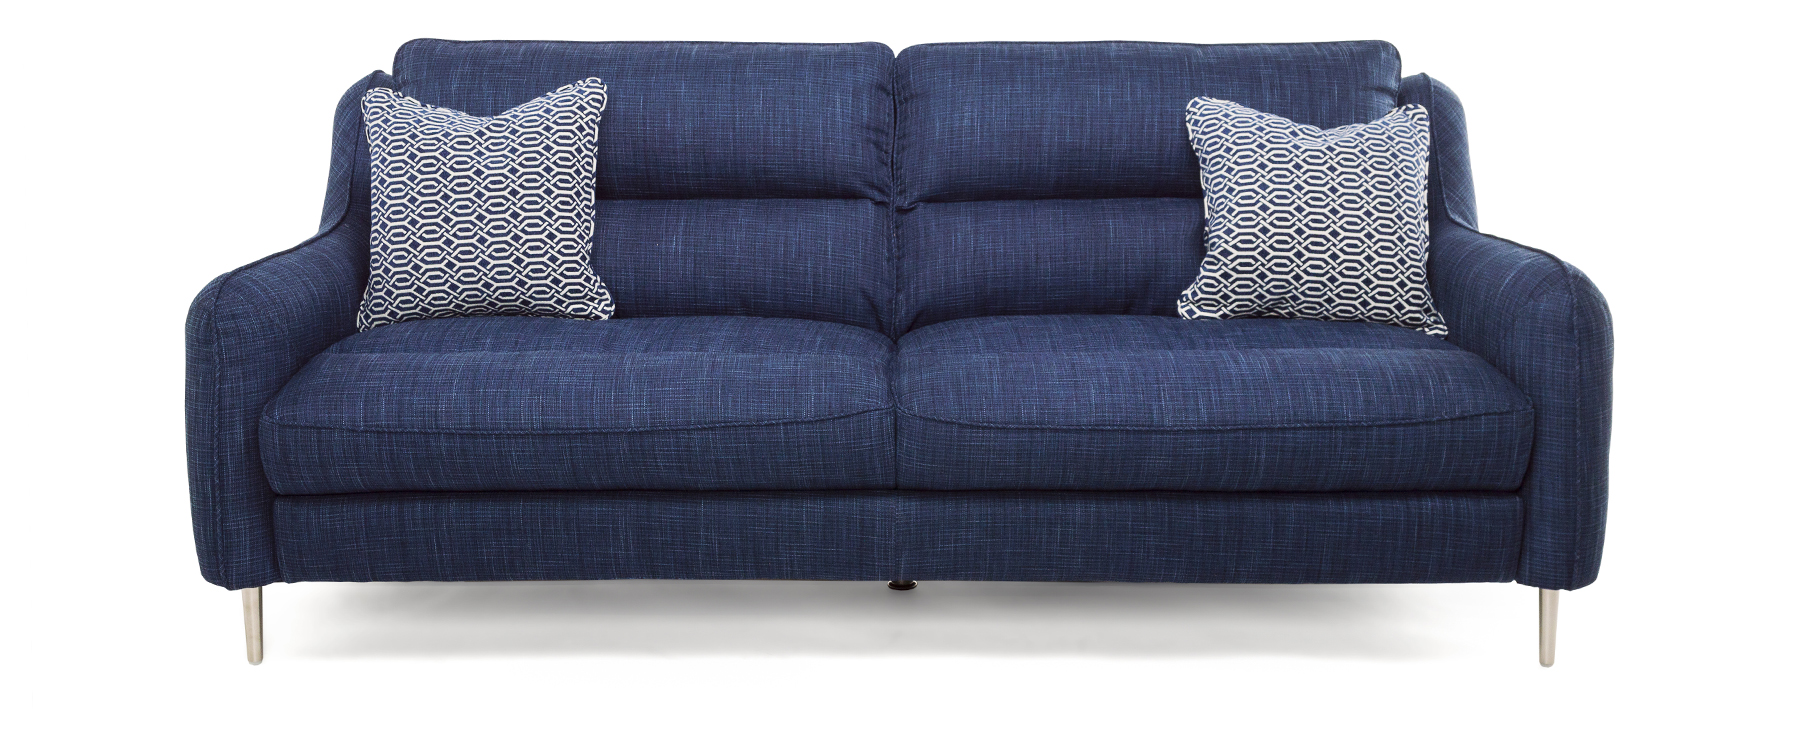 Sofa And Home Voucher Code Kurve 3 Seater Sofa